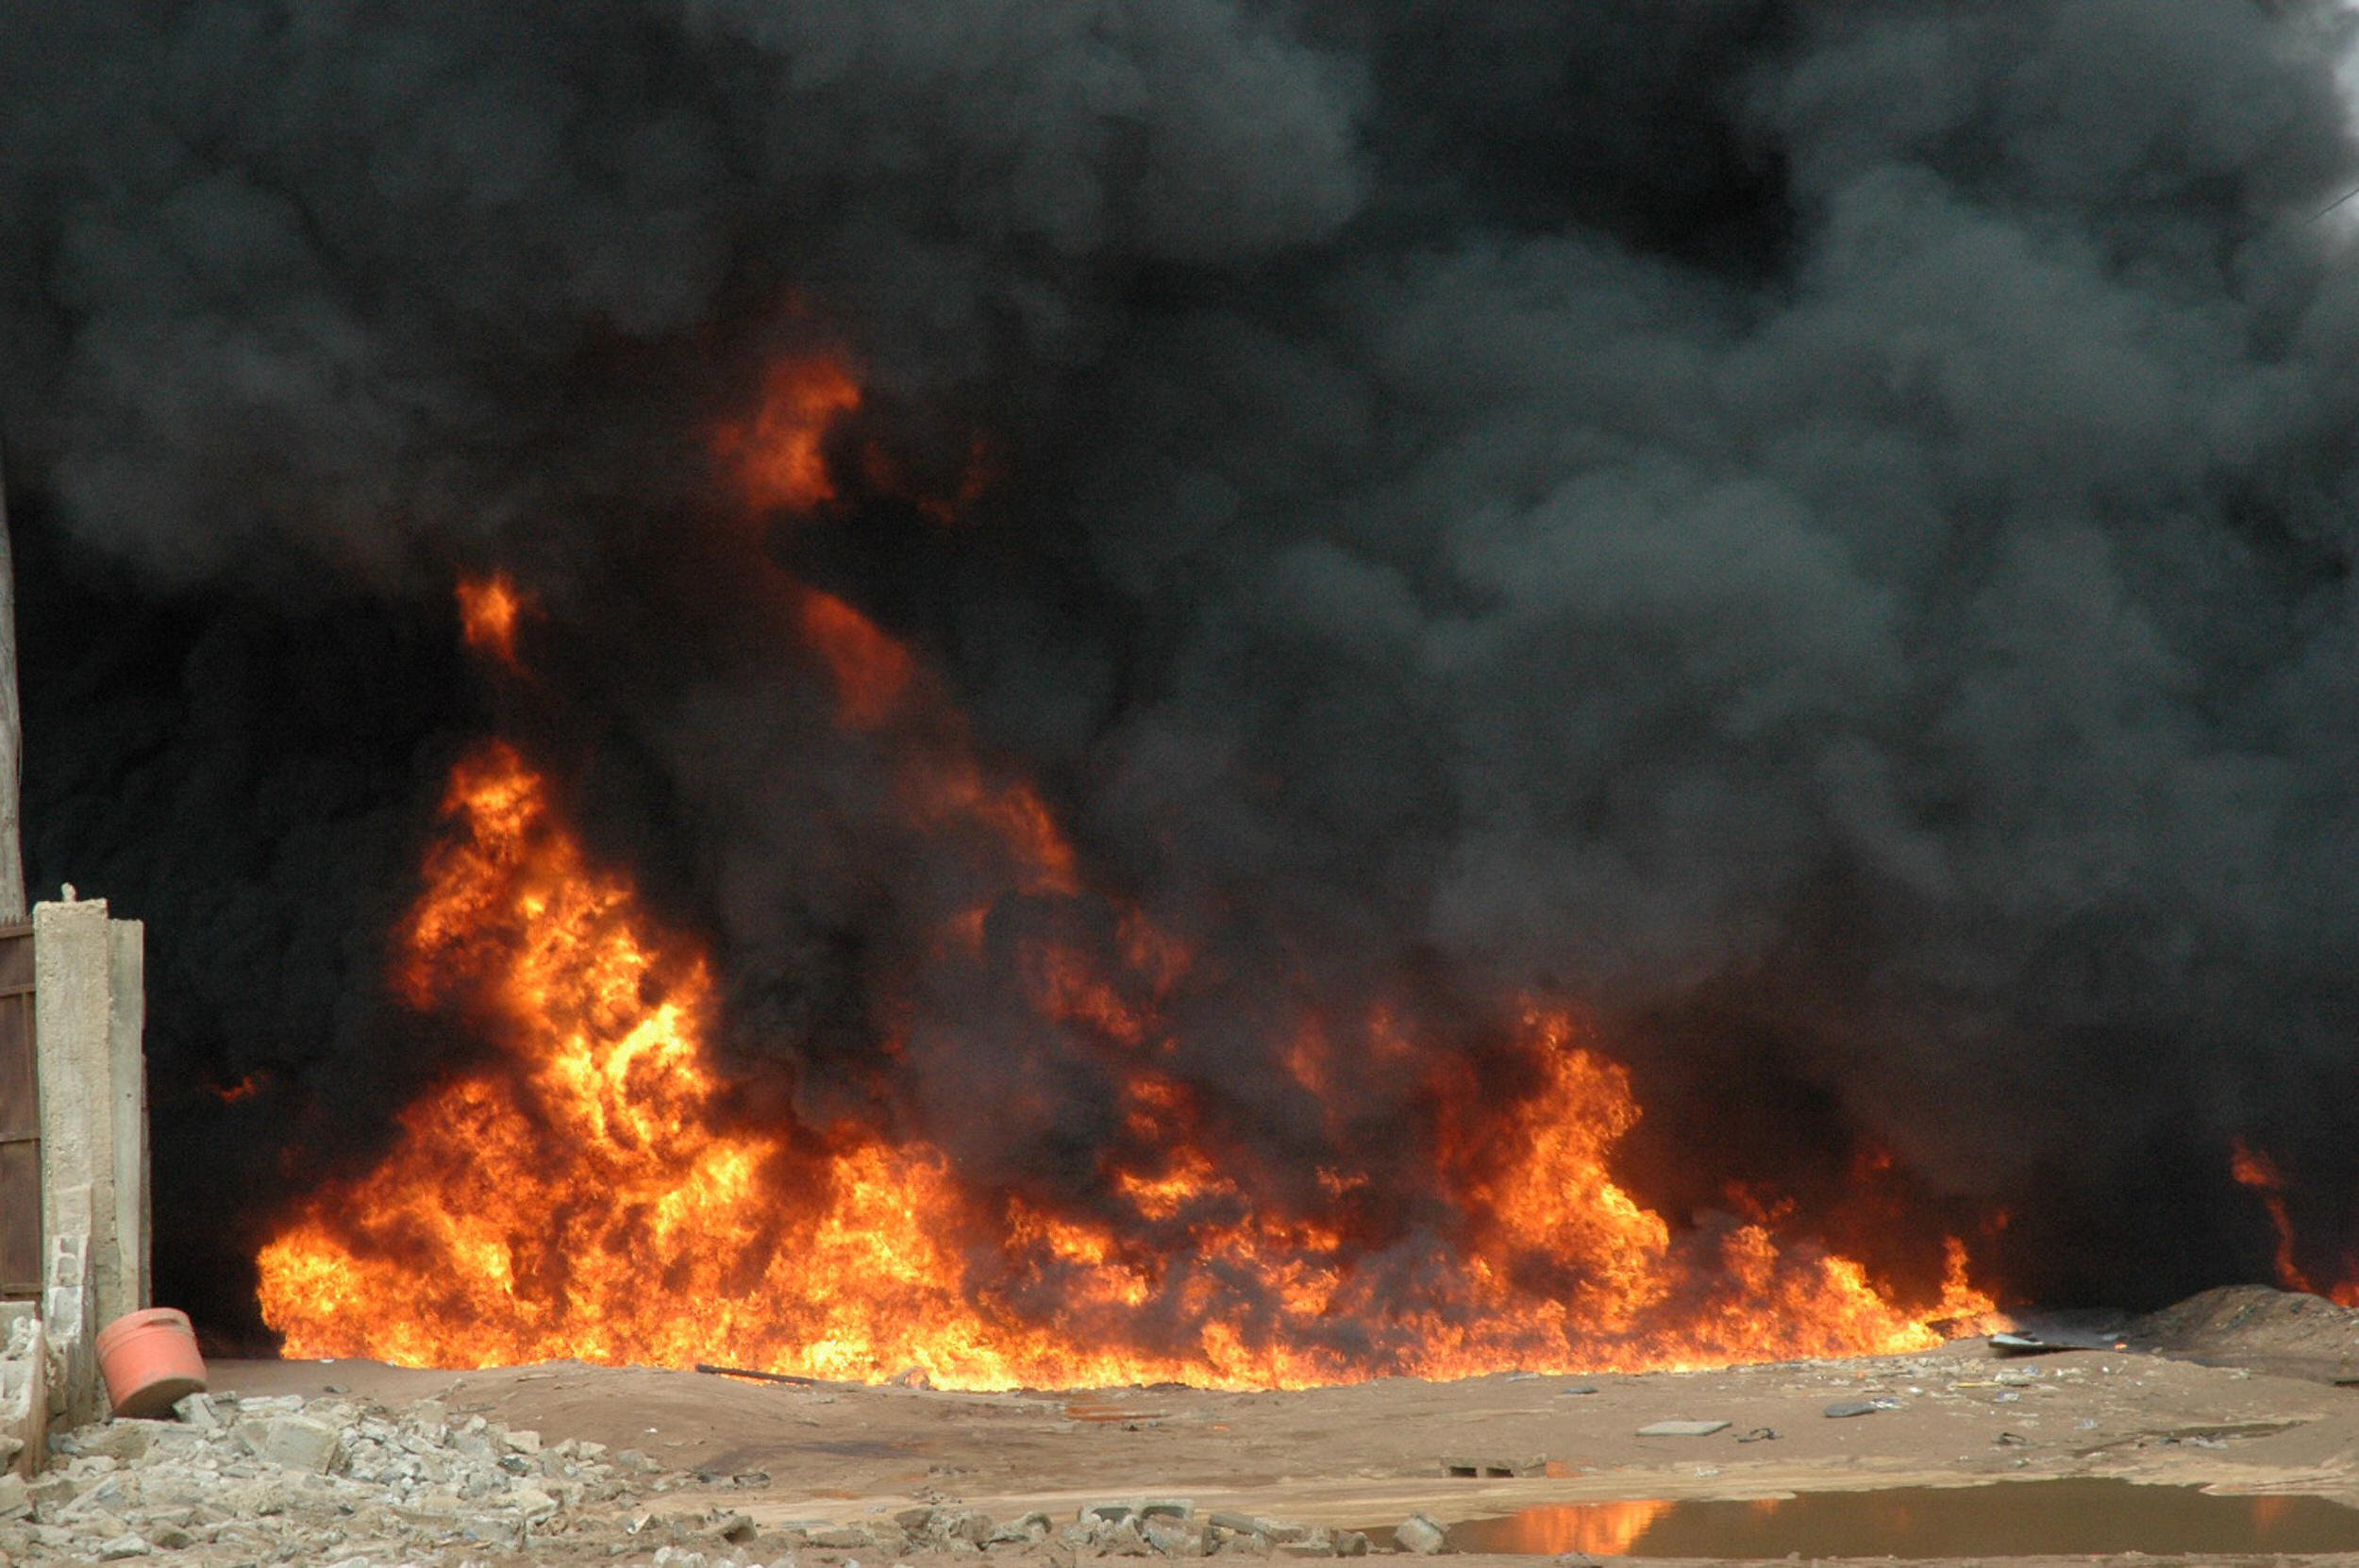 Smoke rises from a blaze on May 15, 2008 in a northern suburb of Lagos following an explosion on an oil pipeline reportedly ruptured by a piece of earthmoving equipment. The fire has claimed the lives of at least ten people and injured 36 others said Abdulsalam Mohammed, a spokesman for the country's national emergency agency at the scene. AFP PHOTO / STR (Photo credit should read STRINGER/AFP/Getty Images)